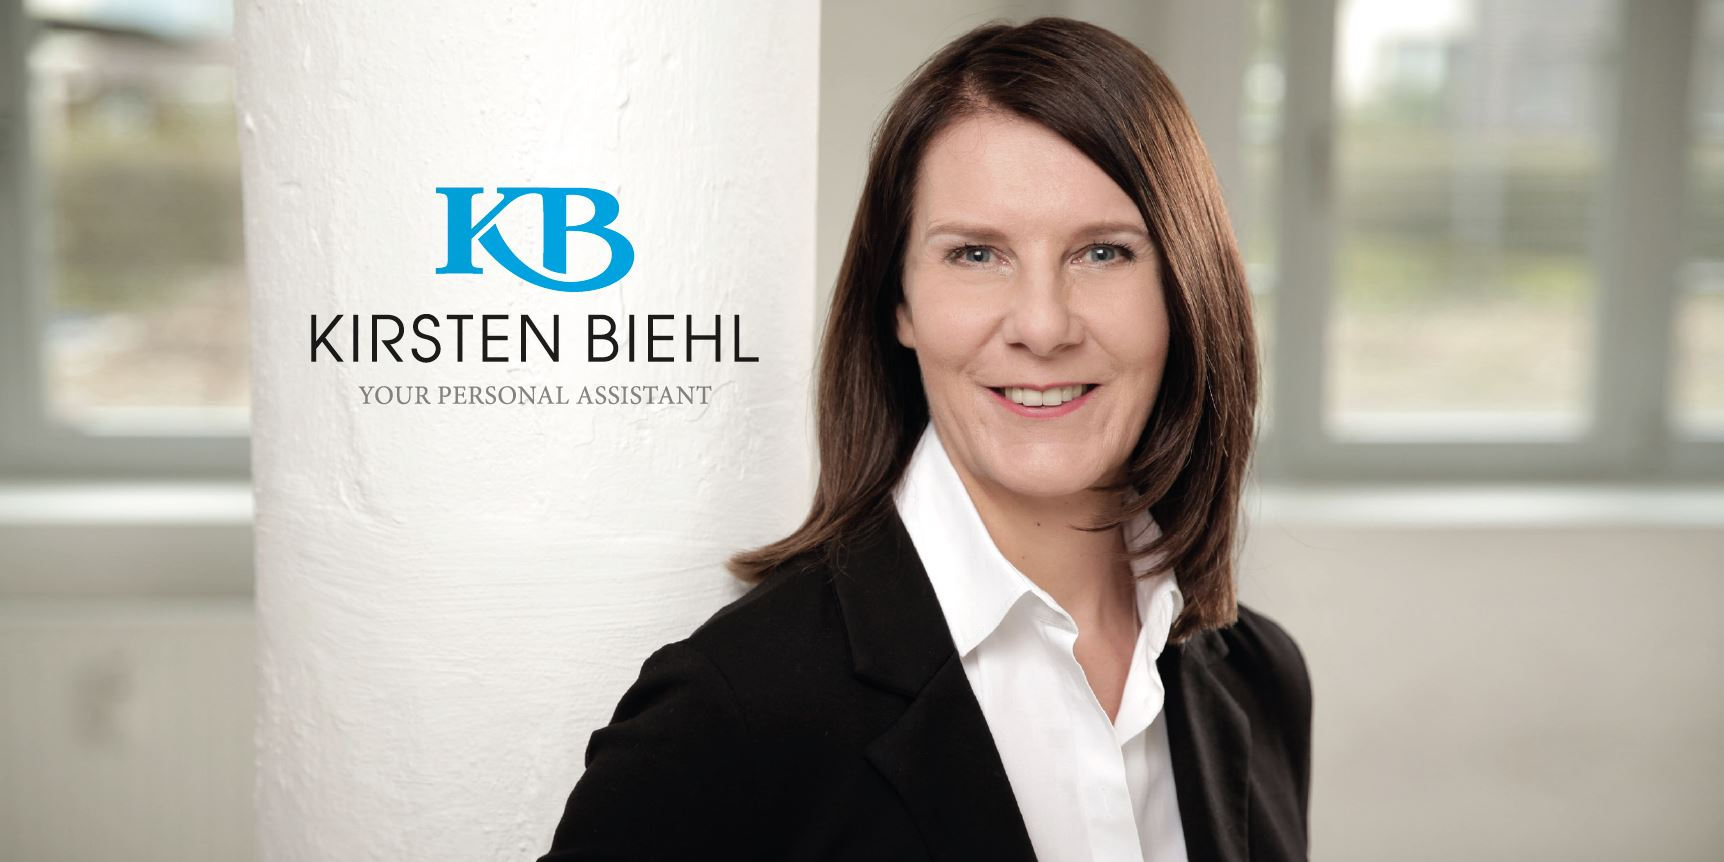 Kirsten Biehl - Your Personal Assistant